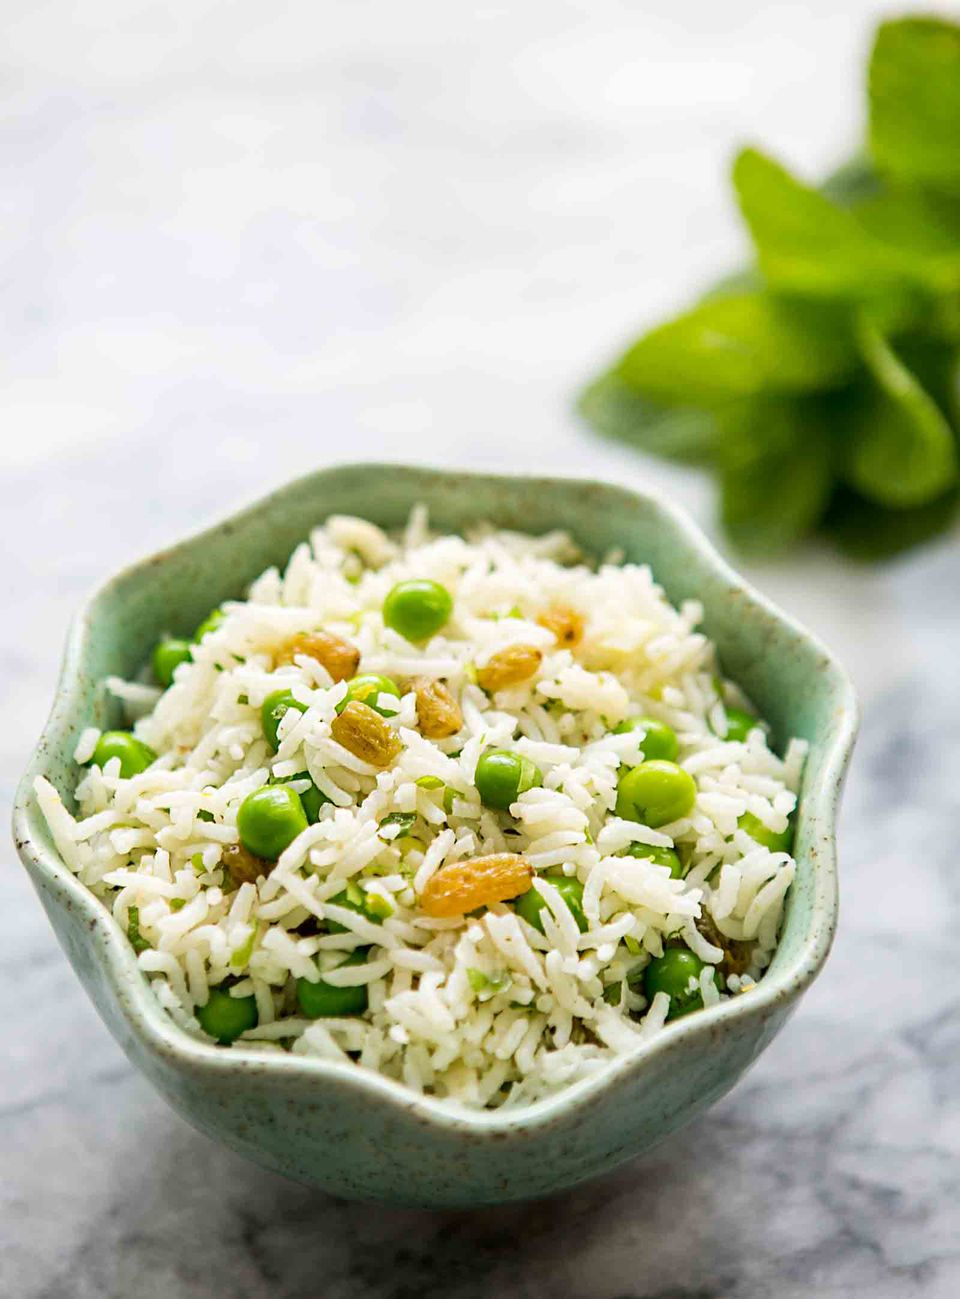 Basmati Rice Salad with Peas and Mint